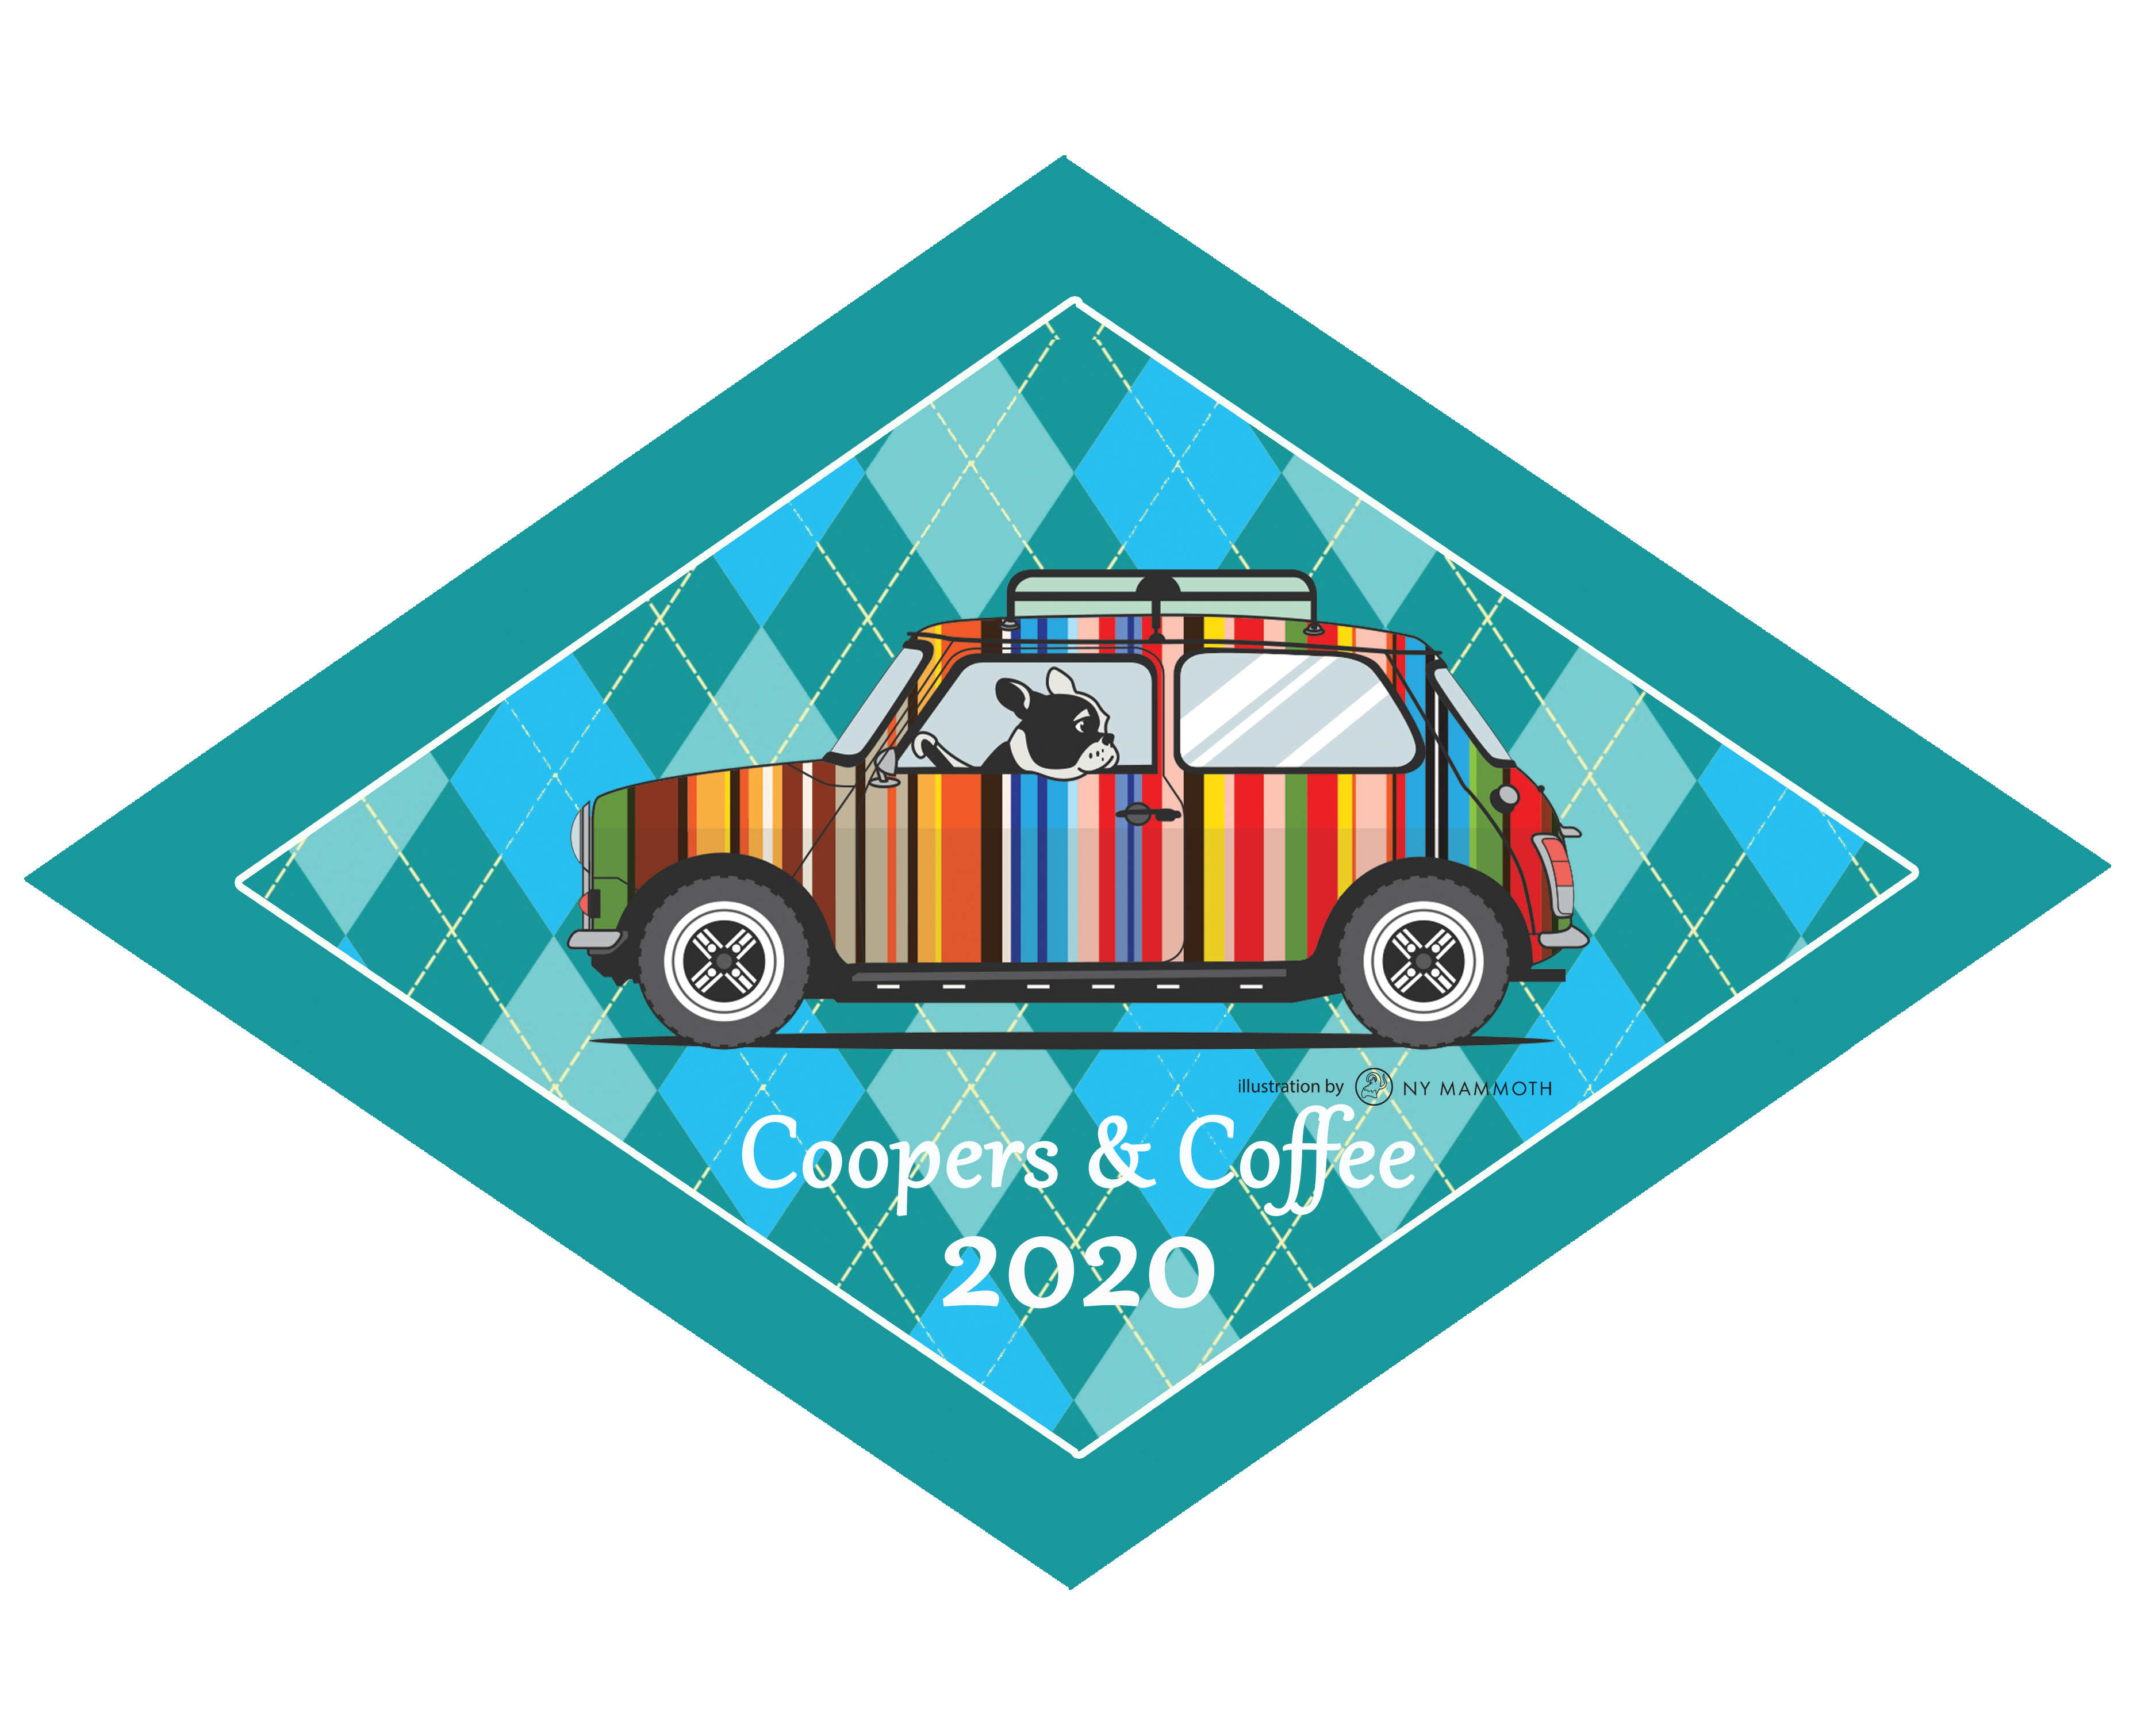 Coopers and Coffee 2020